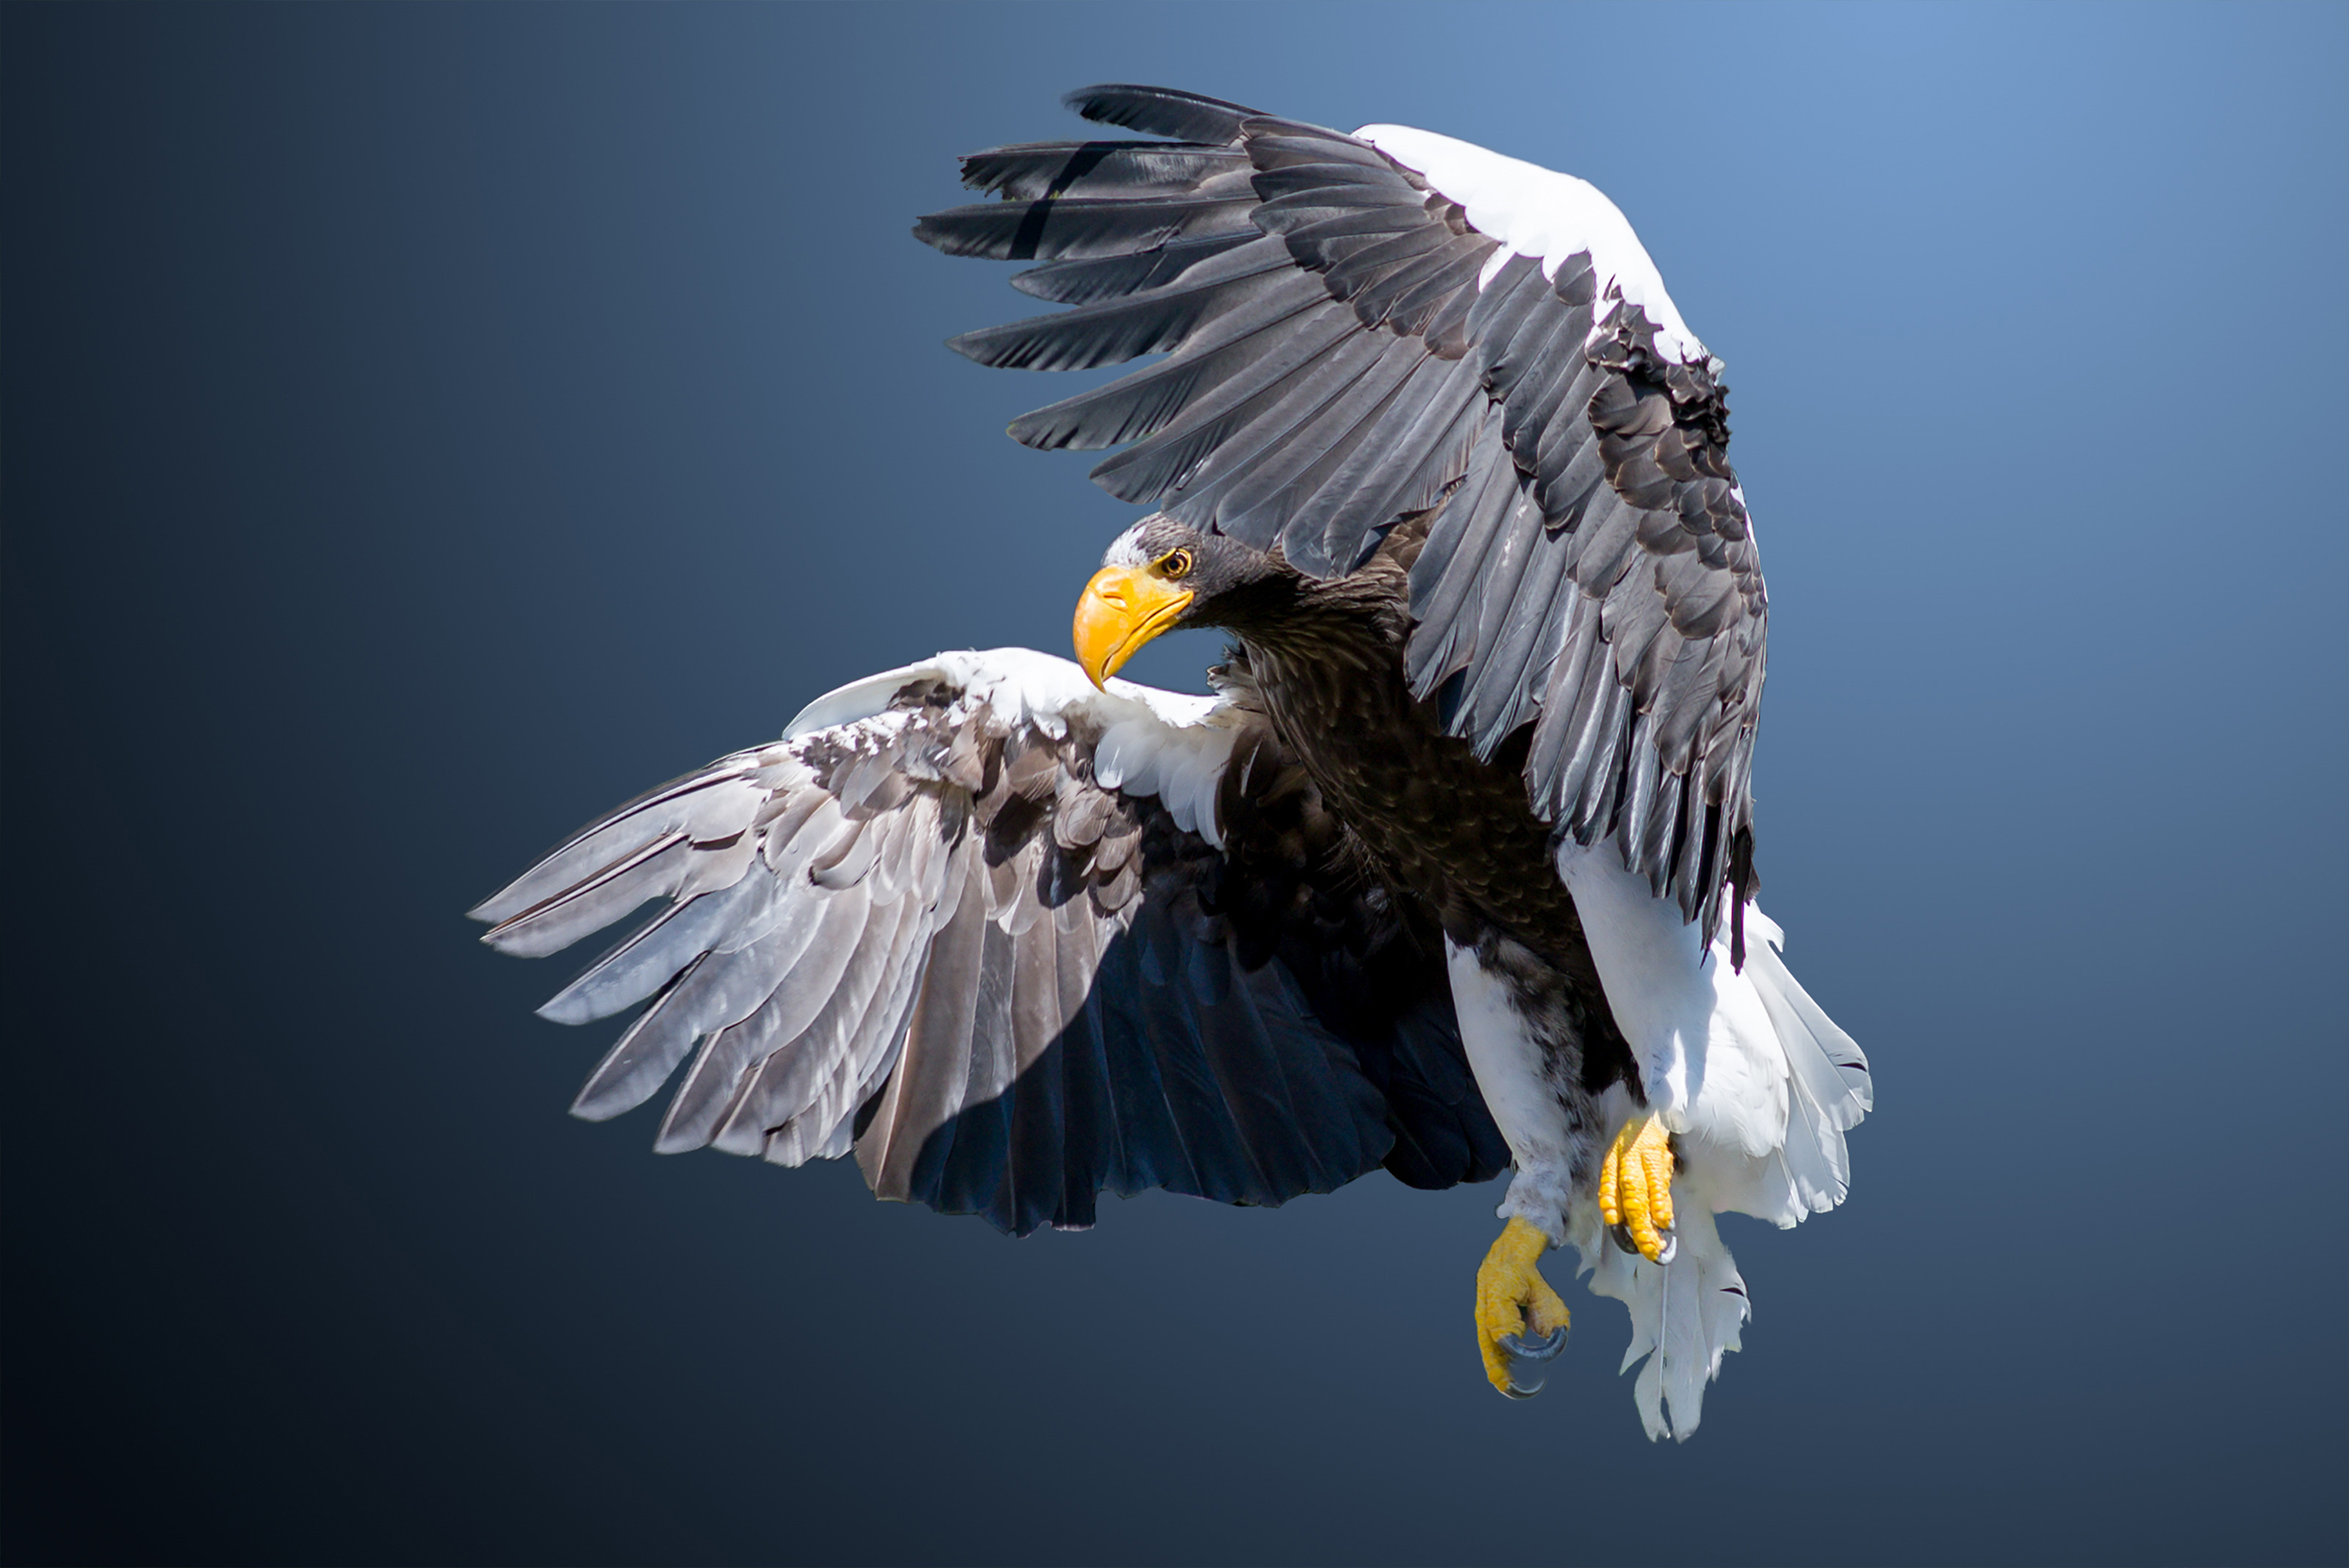 Eagle flying in the air 54656